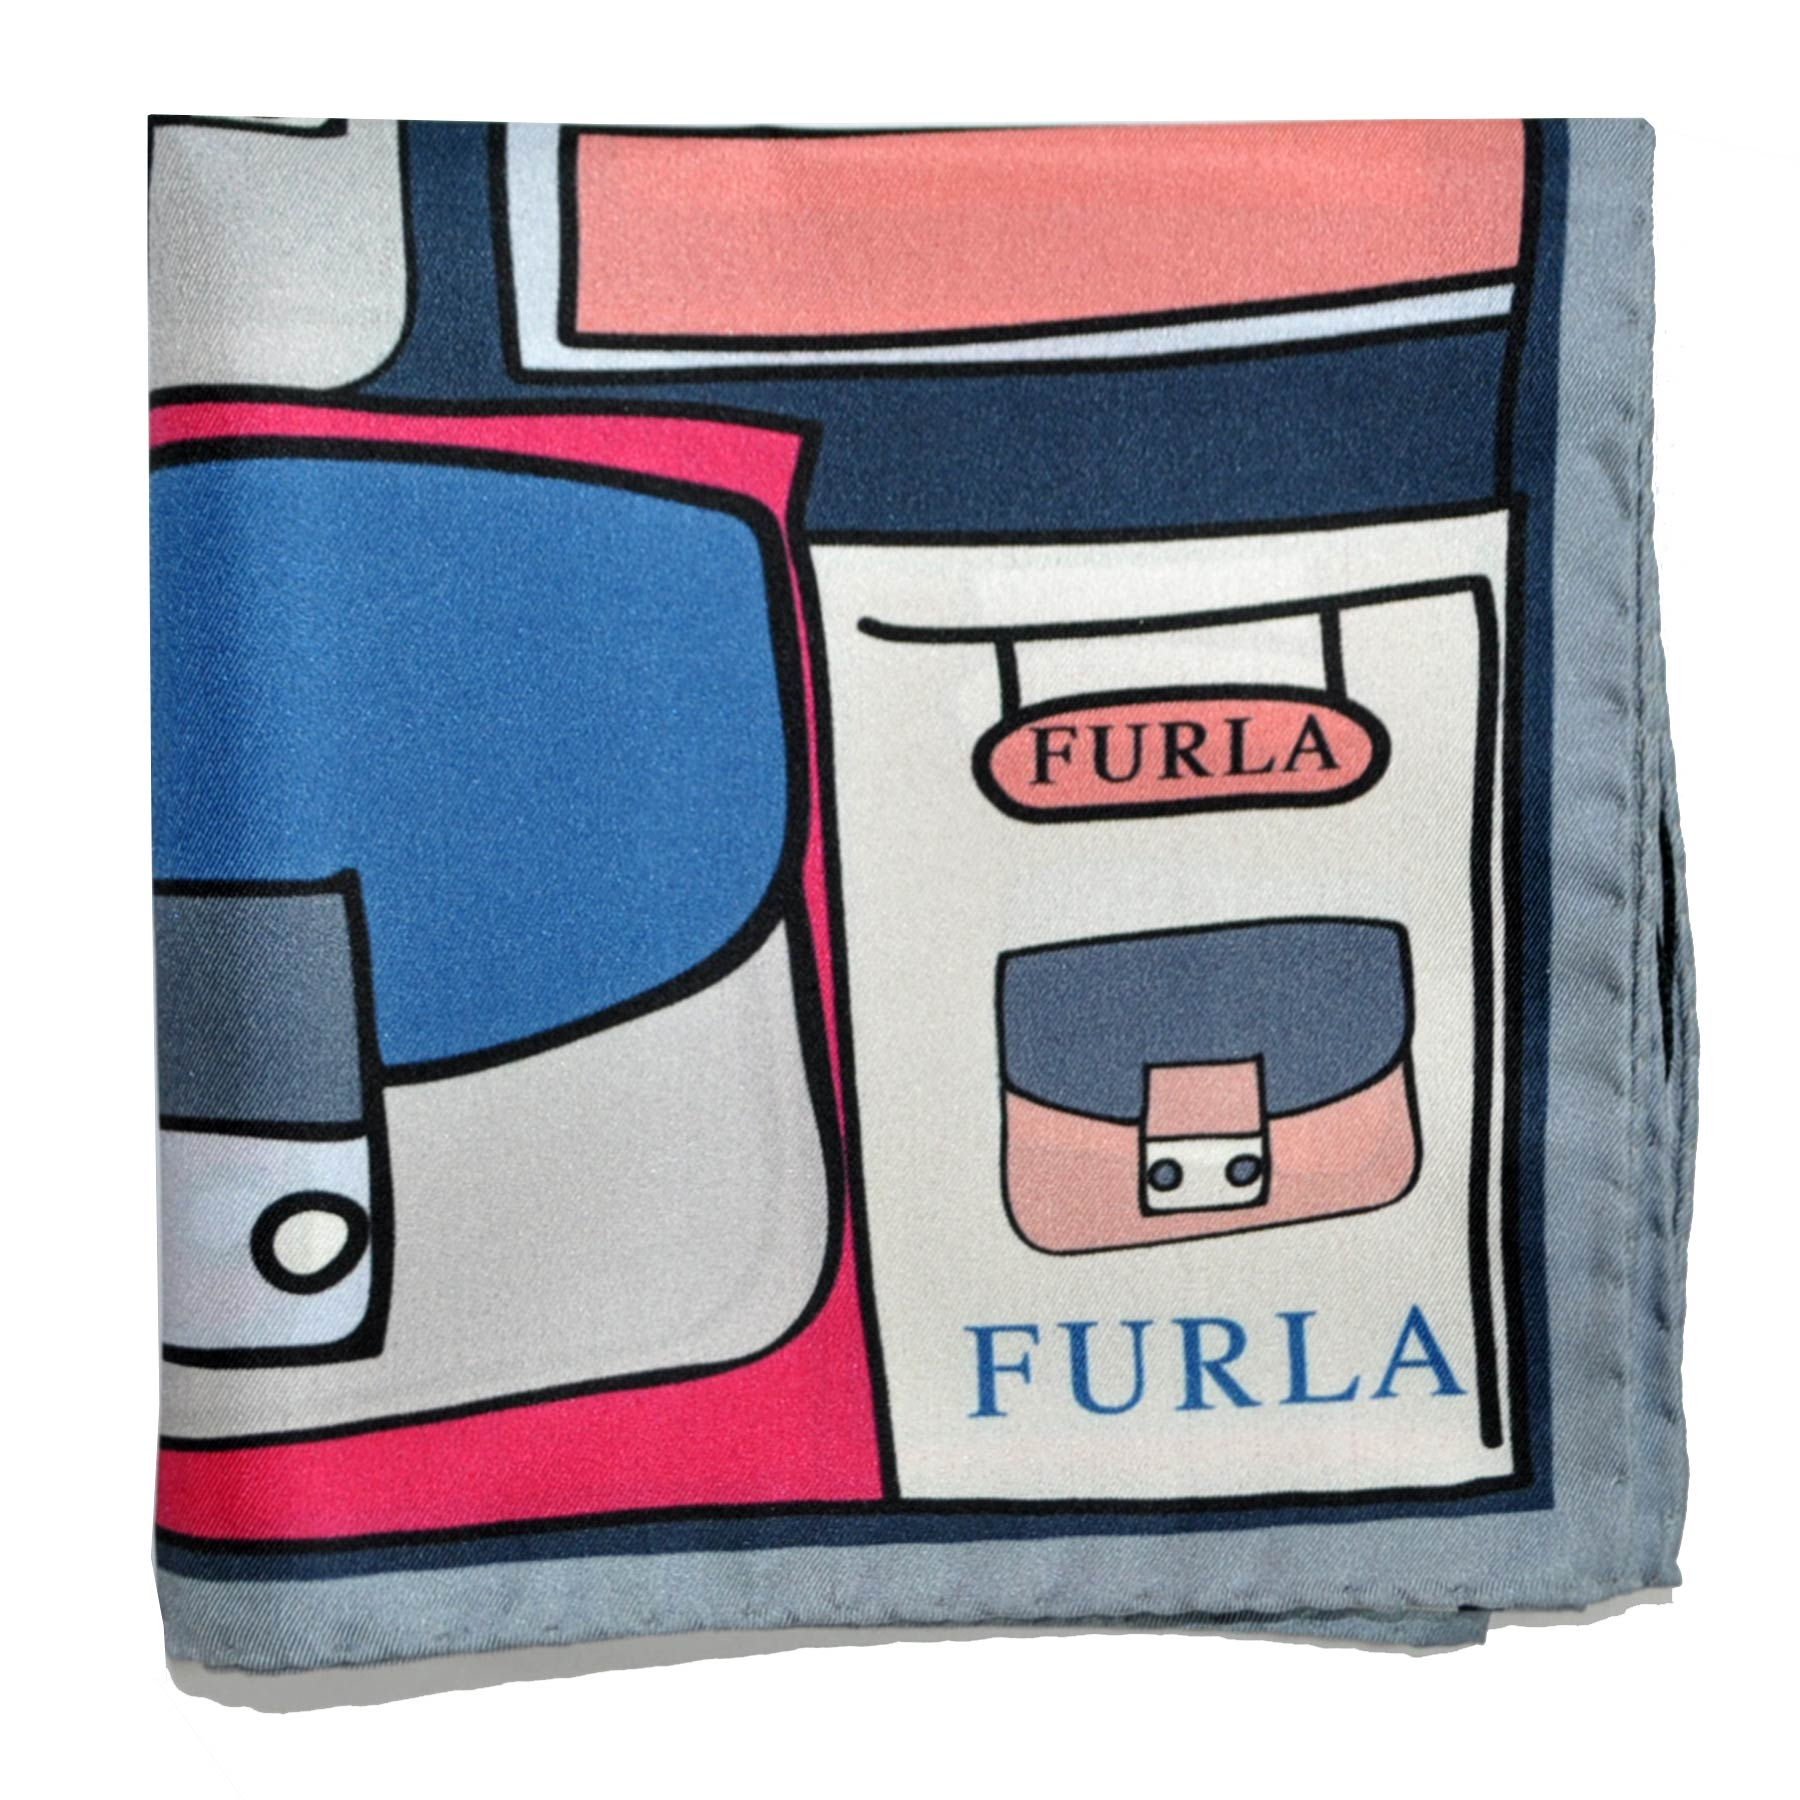 Furla Scarf Handbags & Purses Small Silk Square Scarf